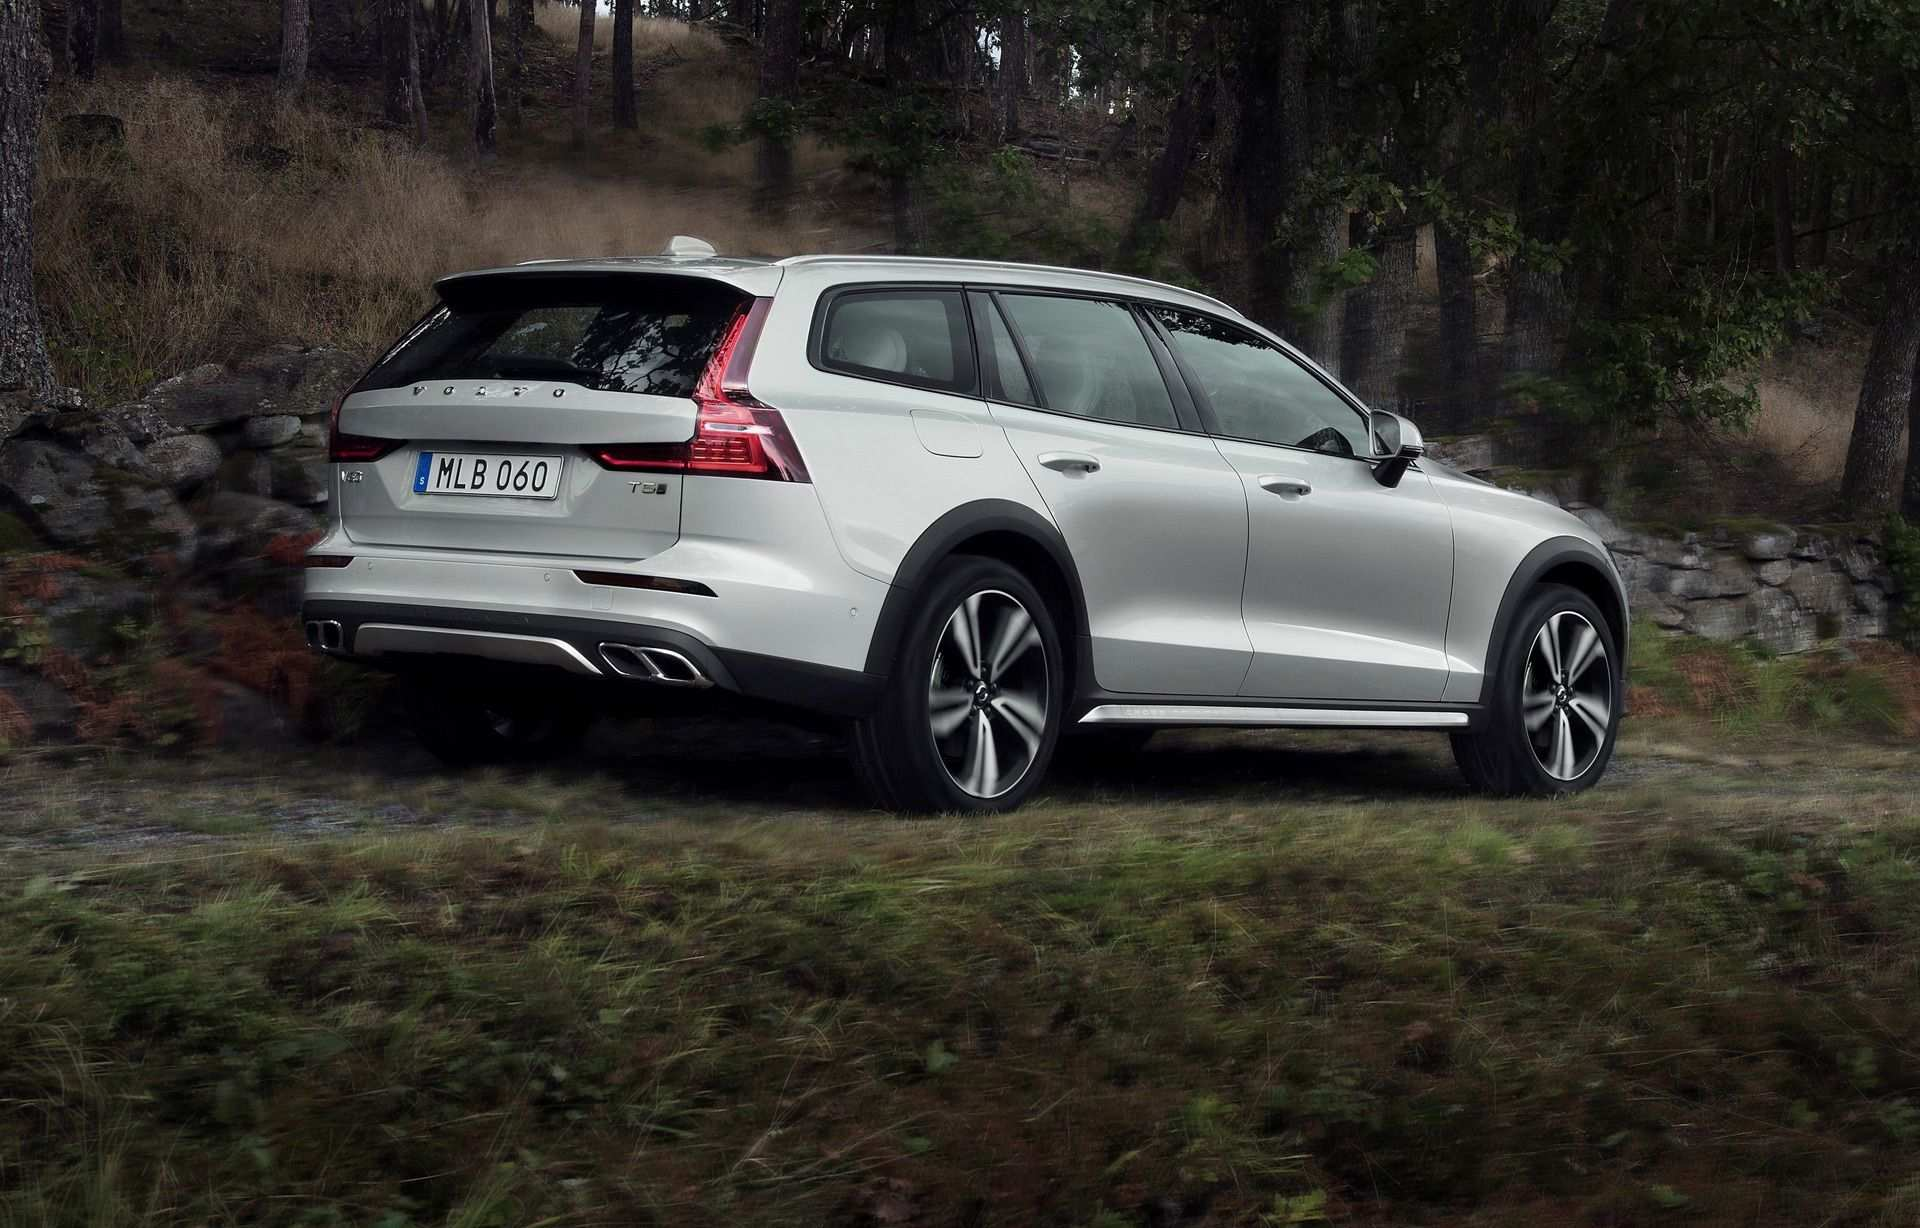 57 The Best Volvo Wagon 2020 Release Date